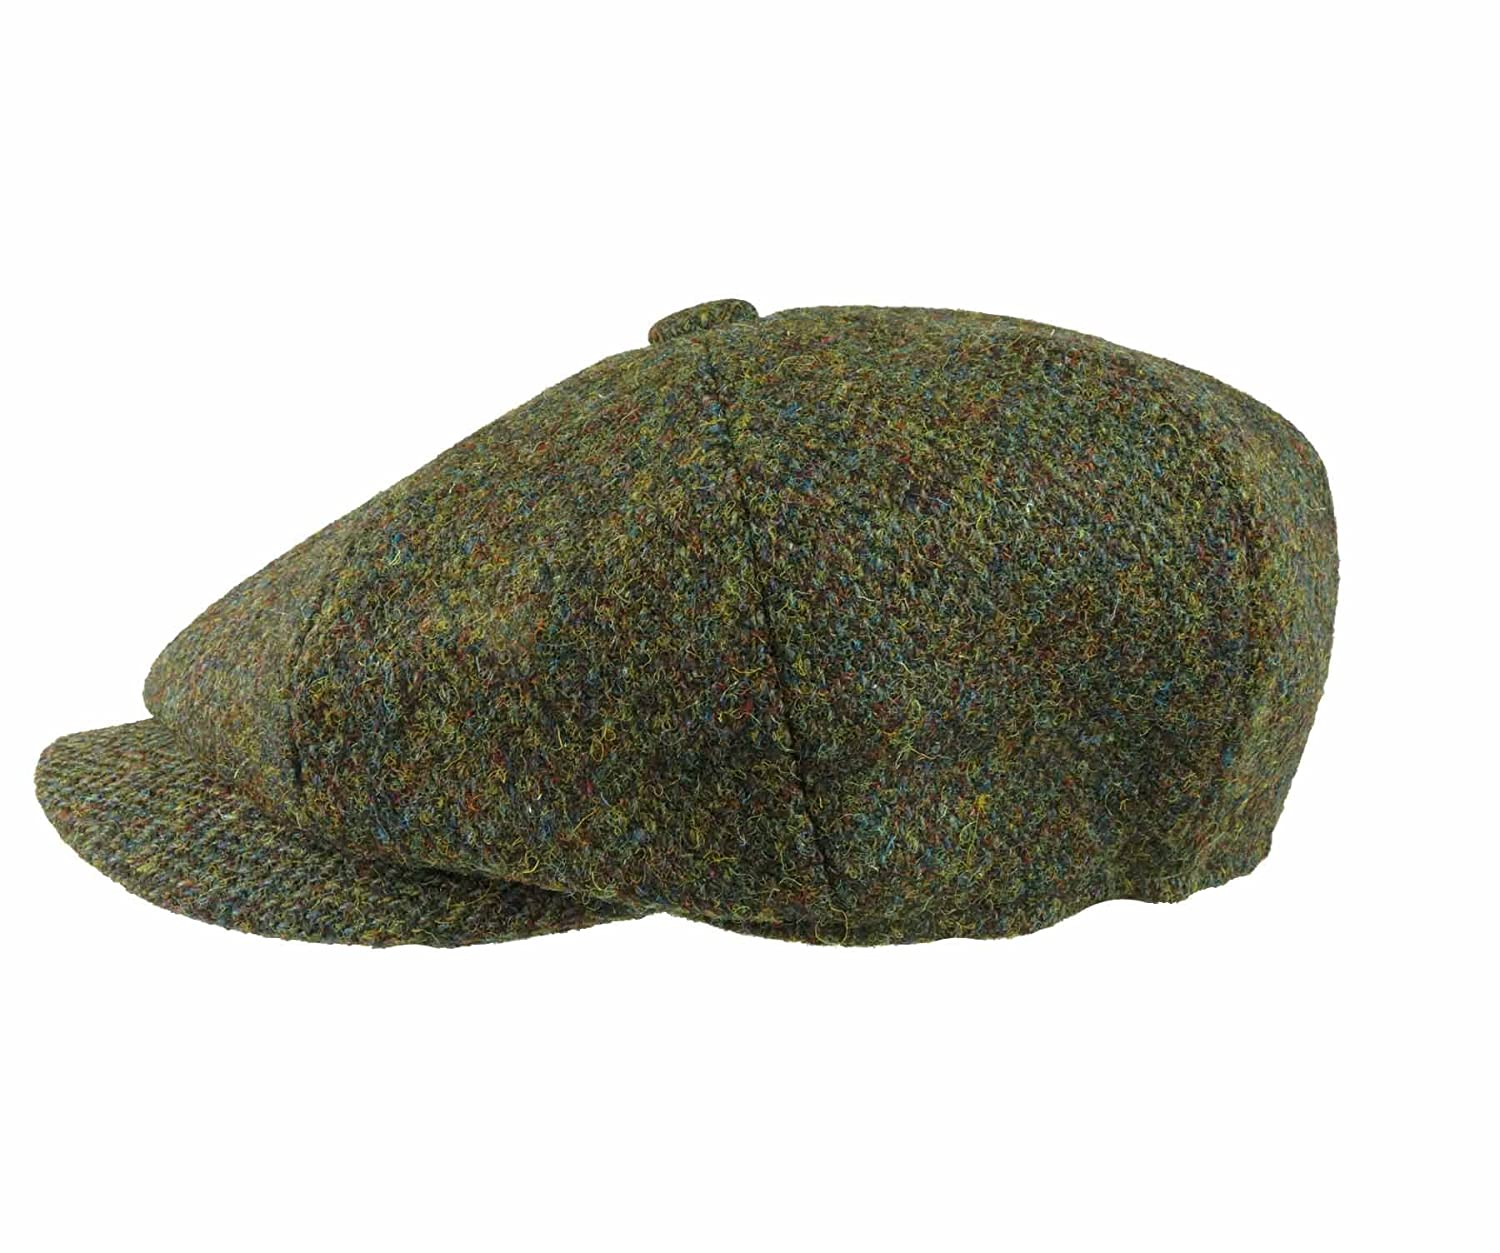 3364665cfea Earland Brothers Failsworth Failsworth Hats Carloway 8-Piece Bakerboy  Harris Tweed Green 2016  Amazon.co.uk  Clothing